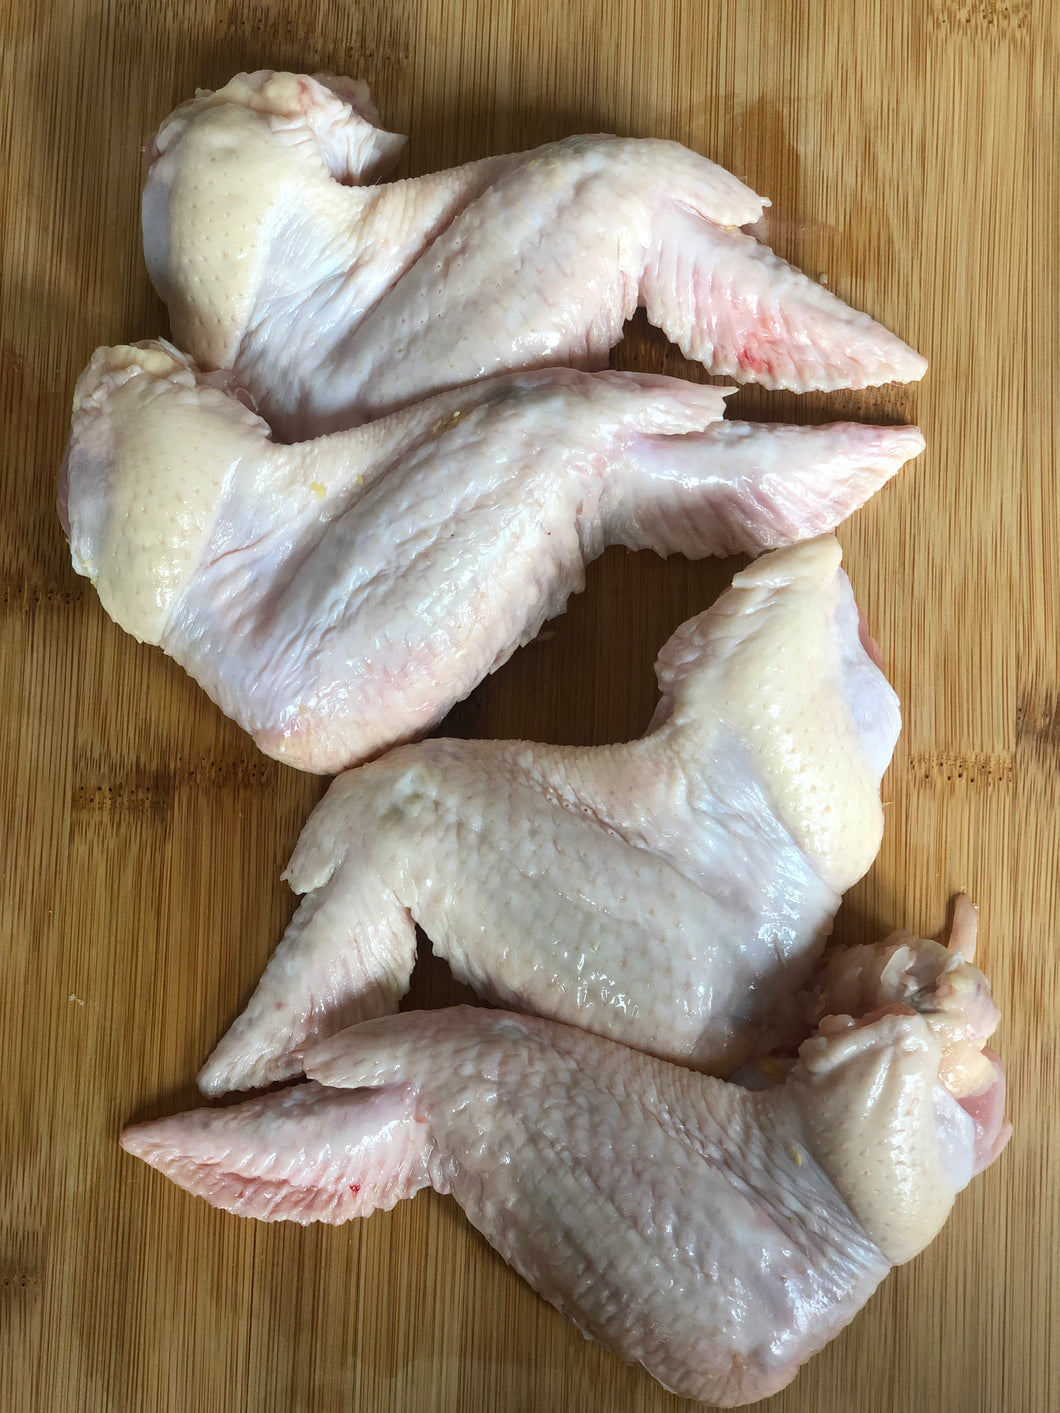 Chicken wings 1.5lbs